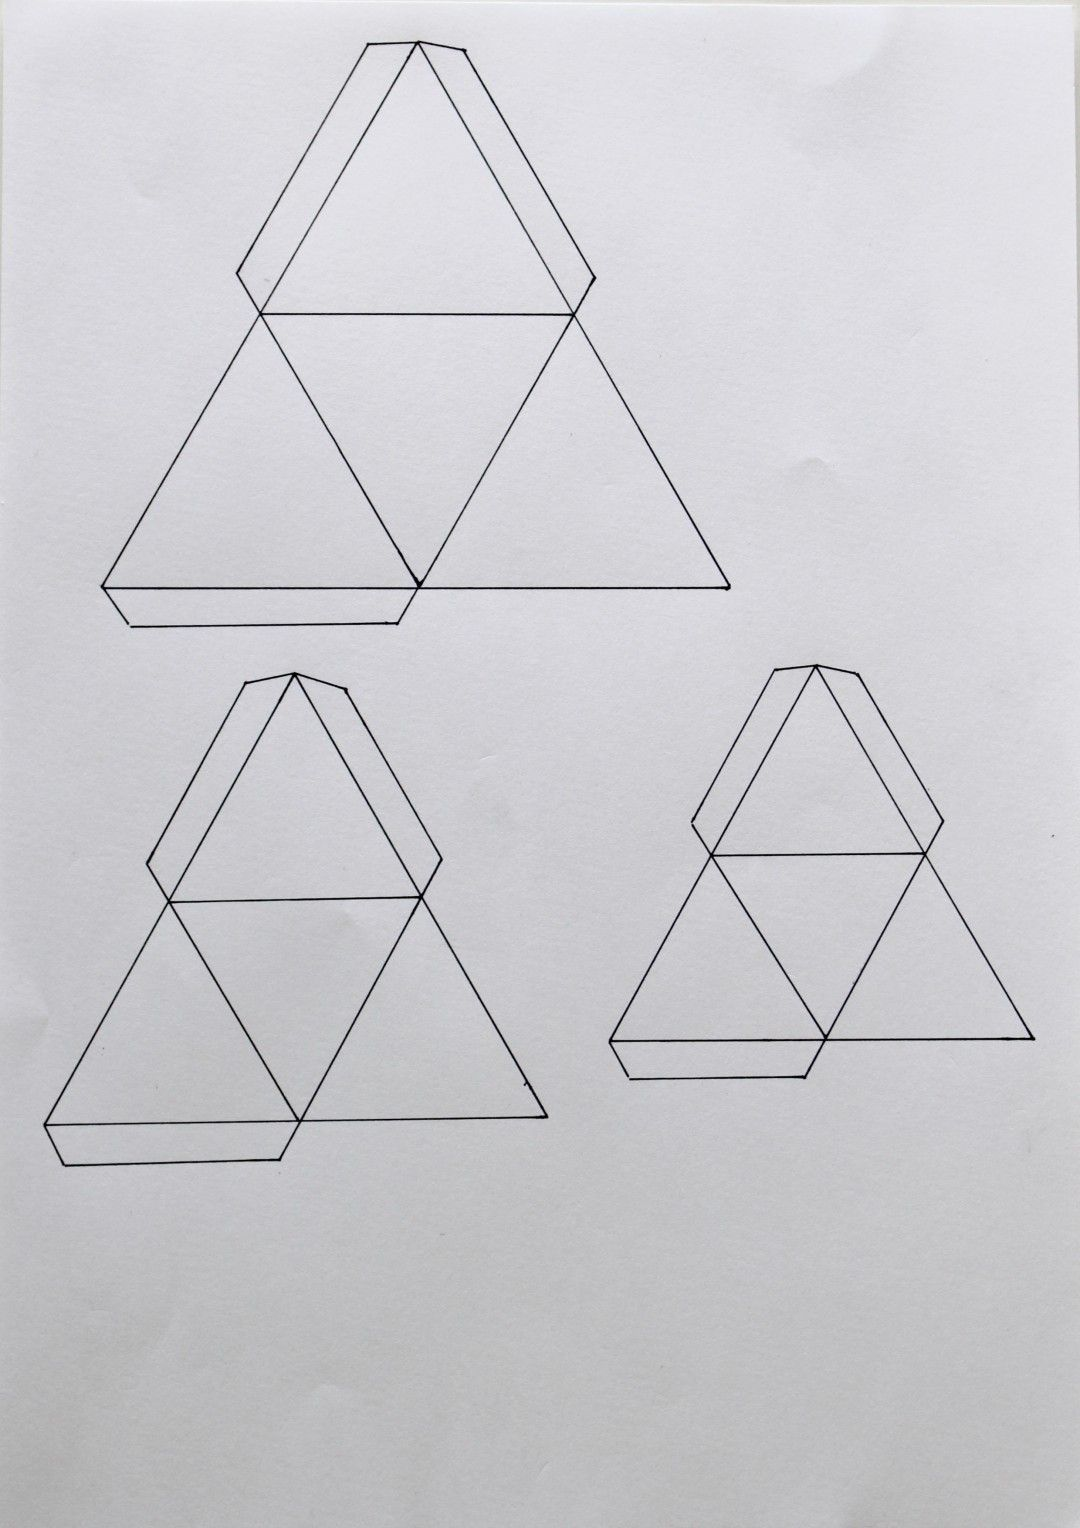 gabarit triangle 3d | かざり | Pinterest | Origami, Papercraft and Craft